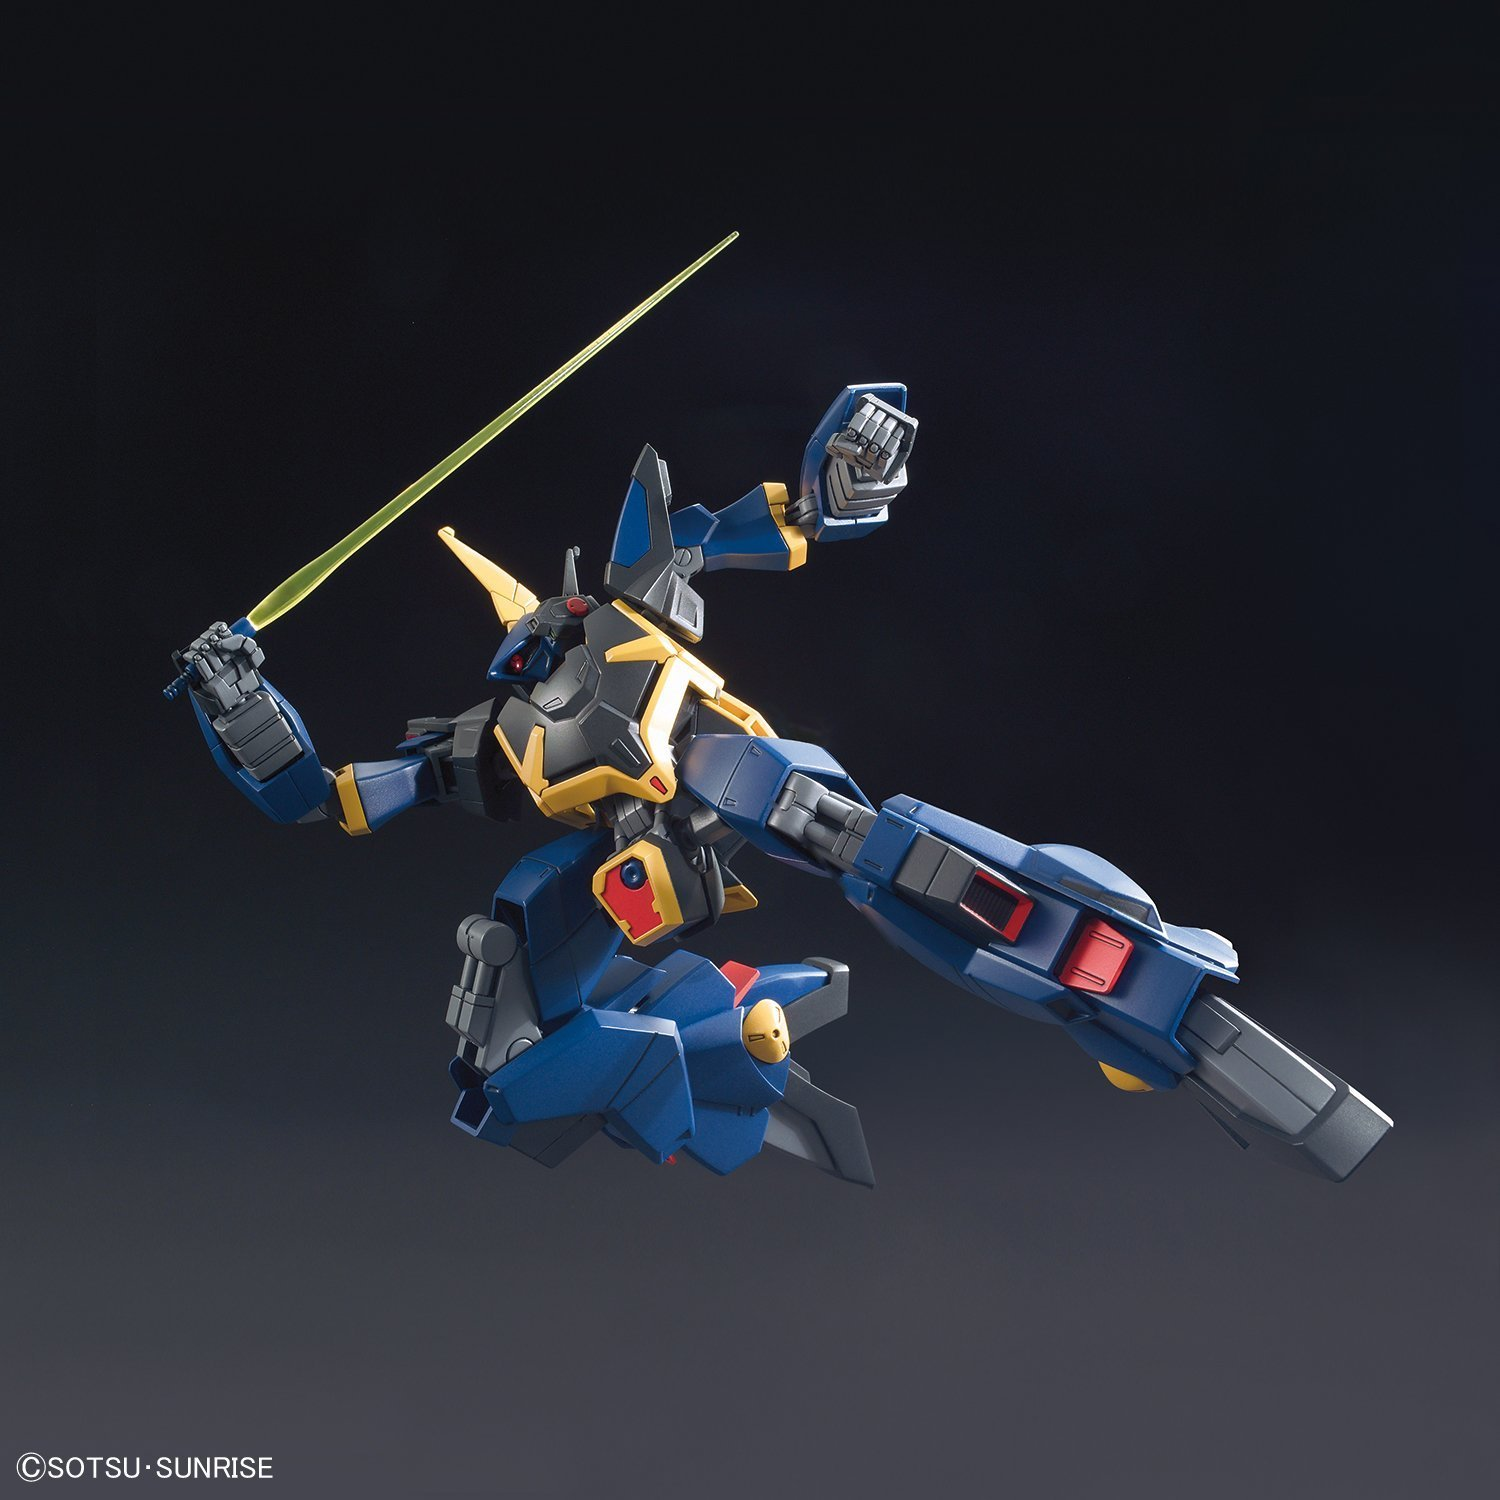 1/144 HGUC Barzam - Model Kit image